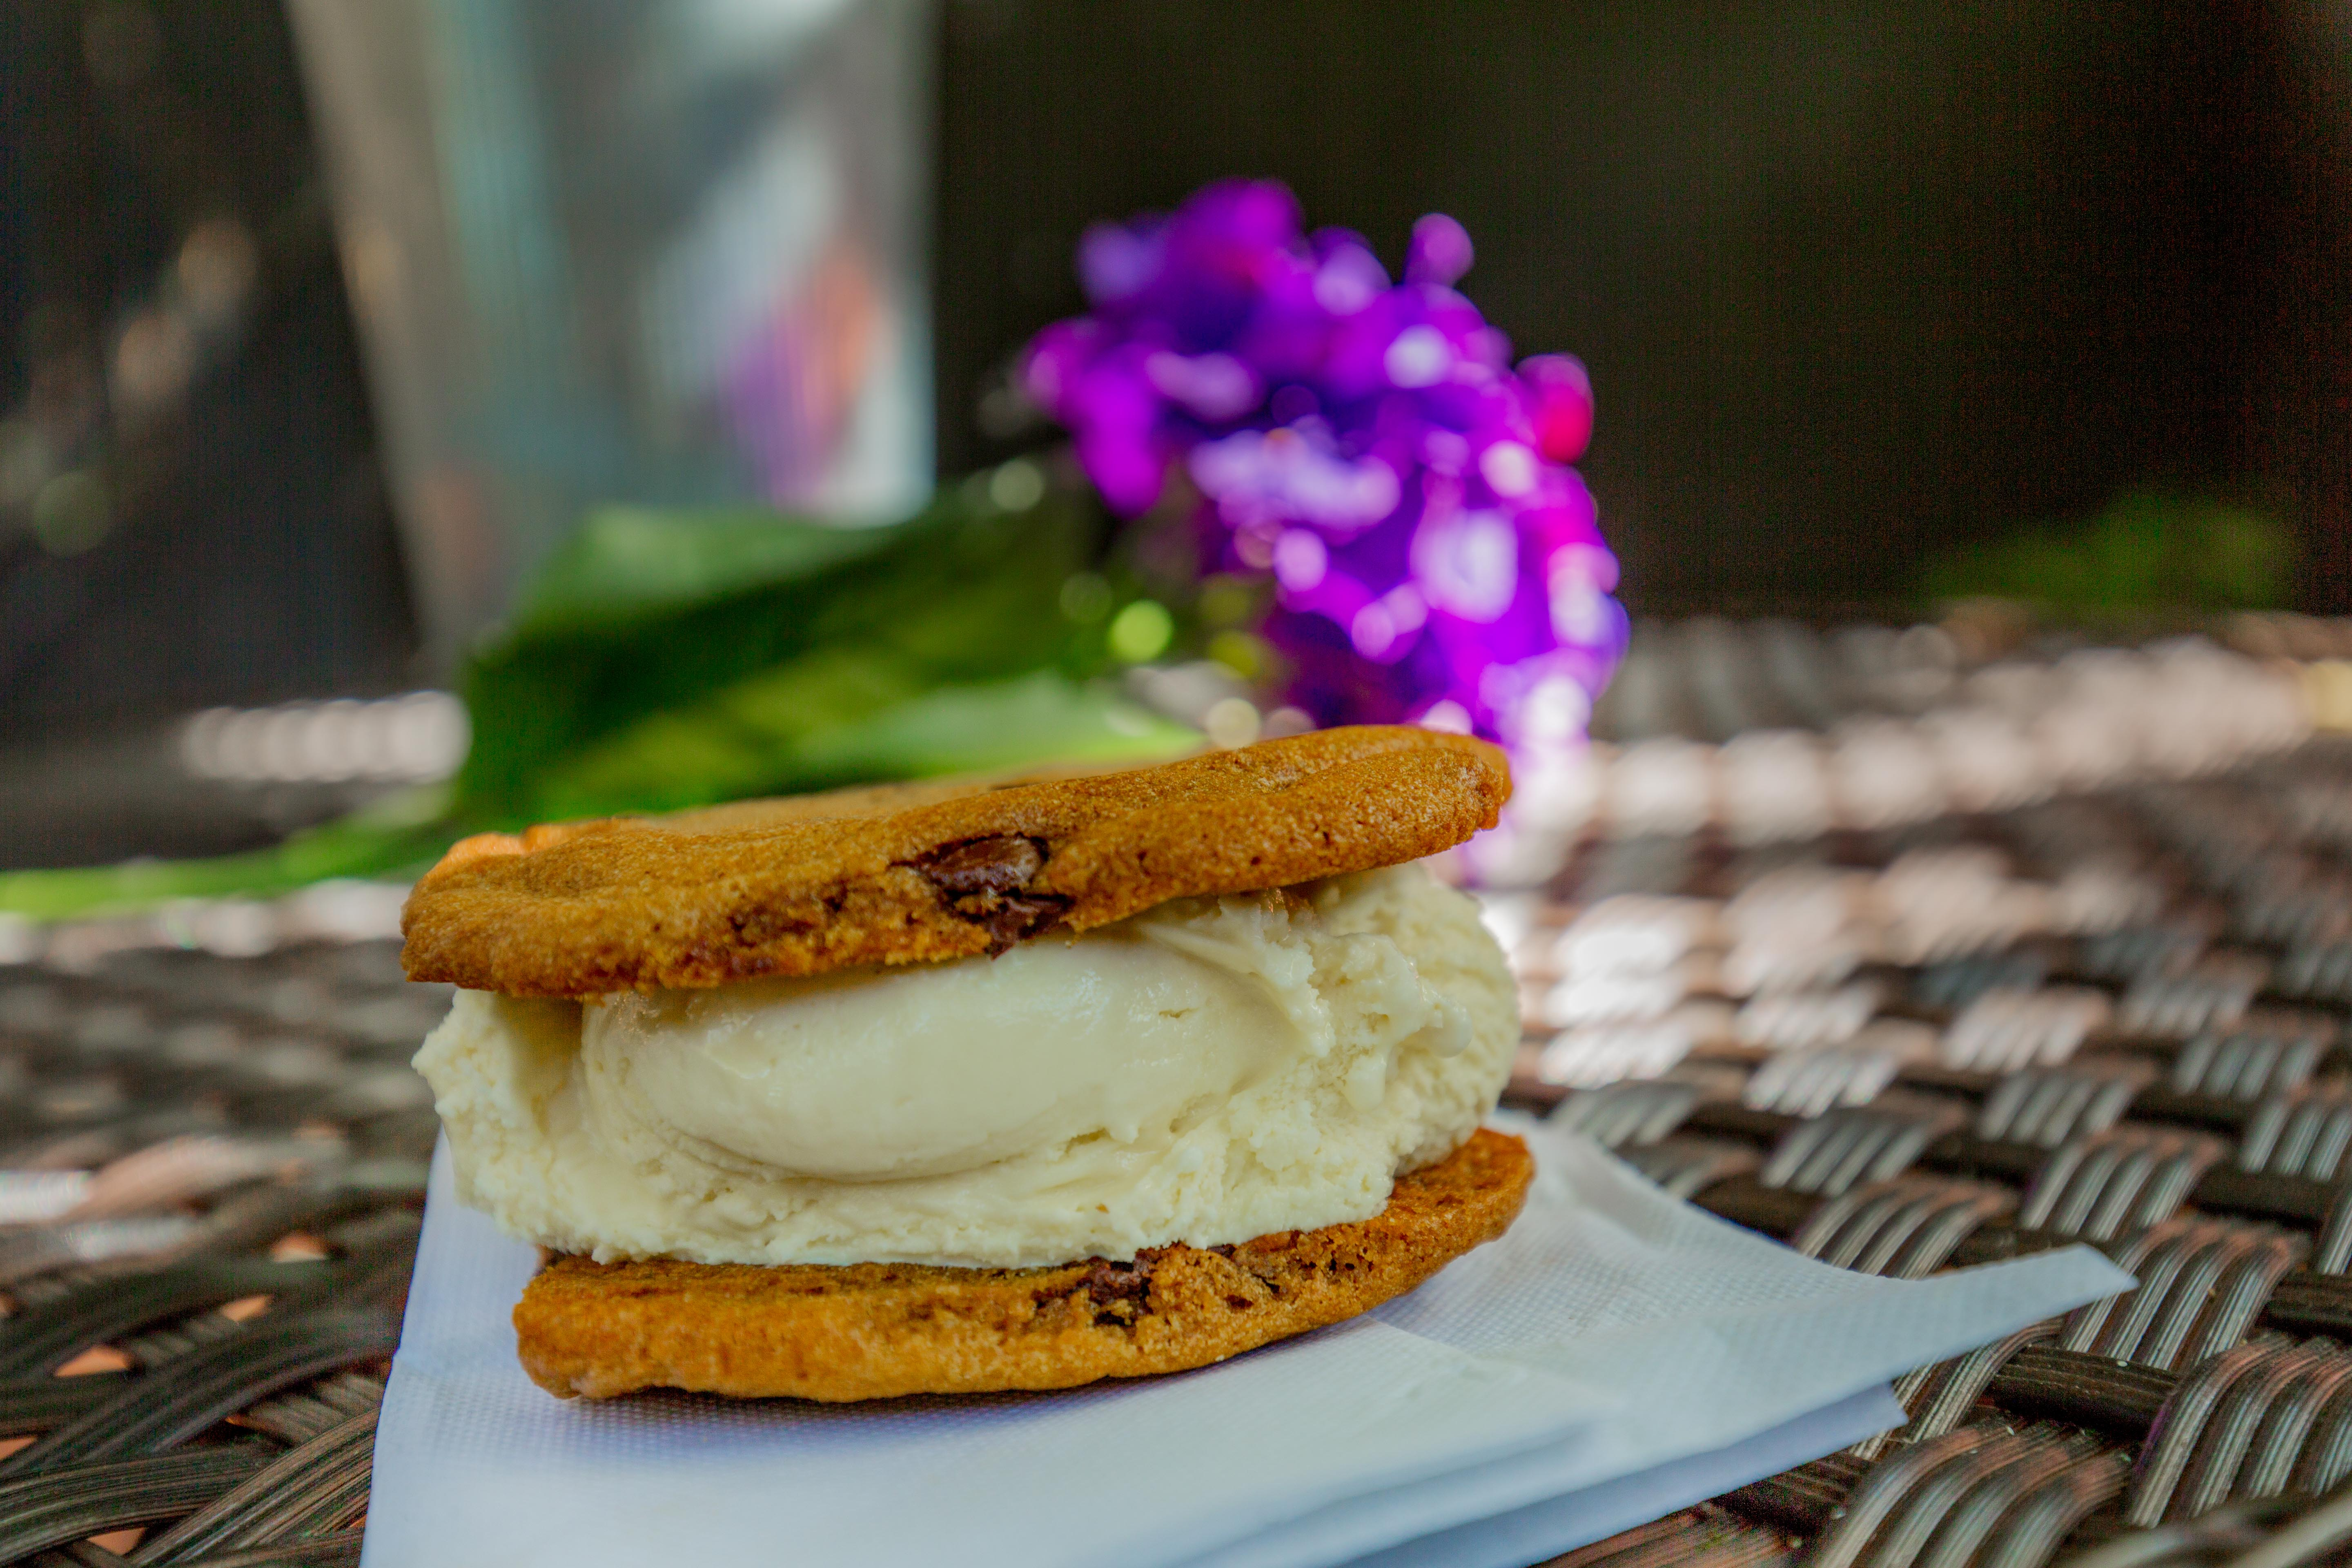 Yummy Ice Cream Sandwhich